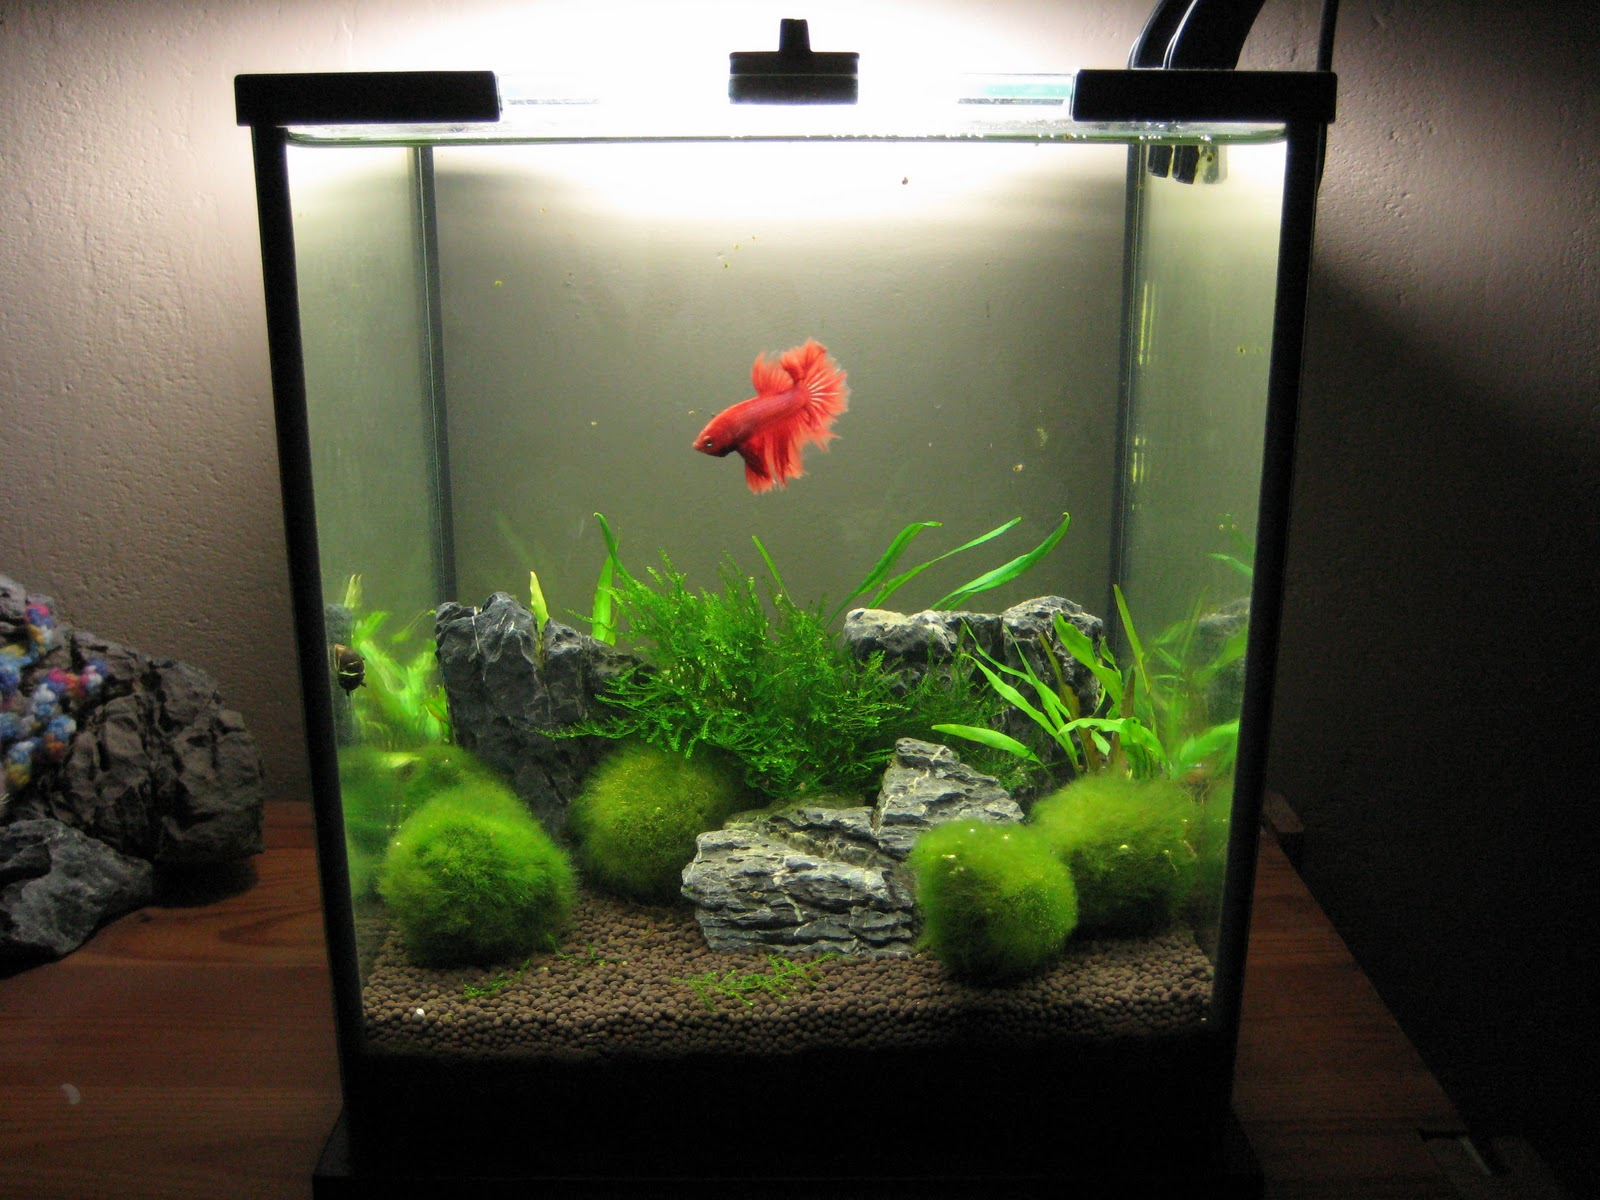 Betta fish tank setup ideas that make a statement for Small fish tank